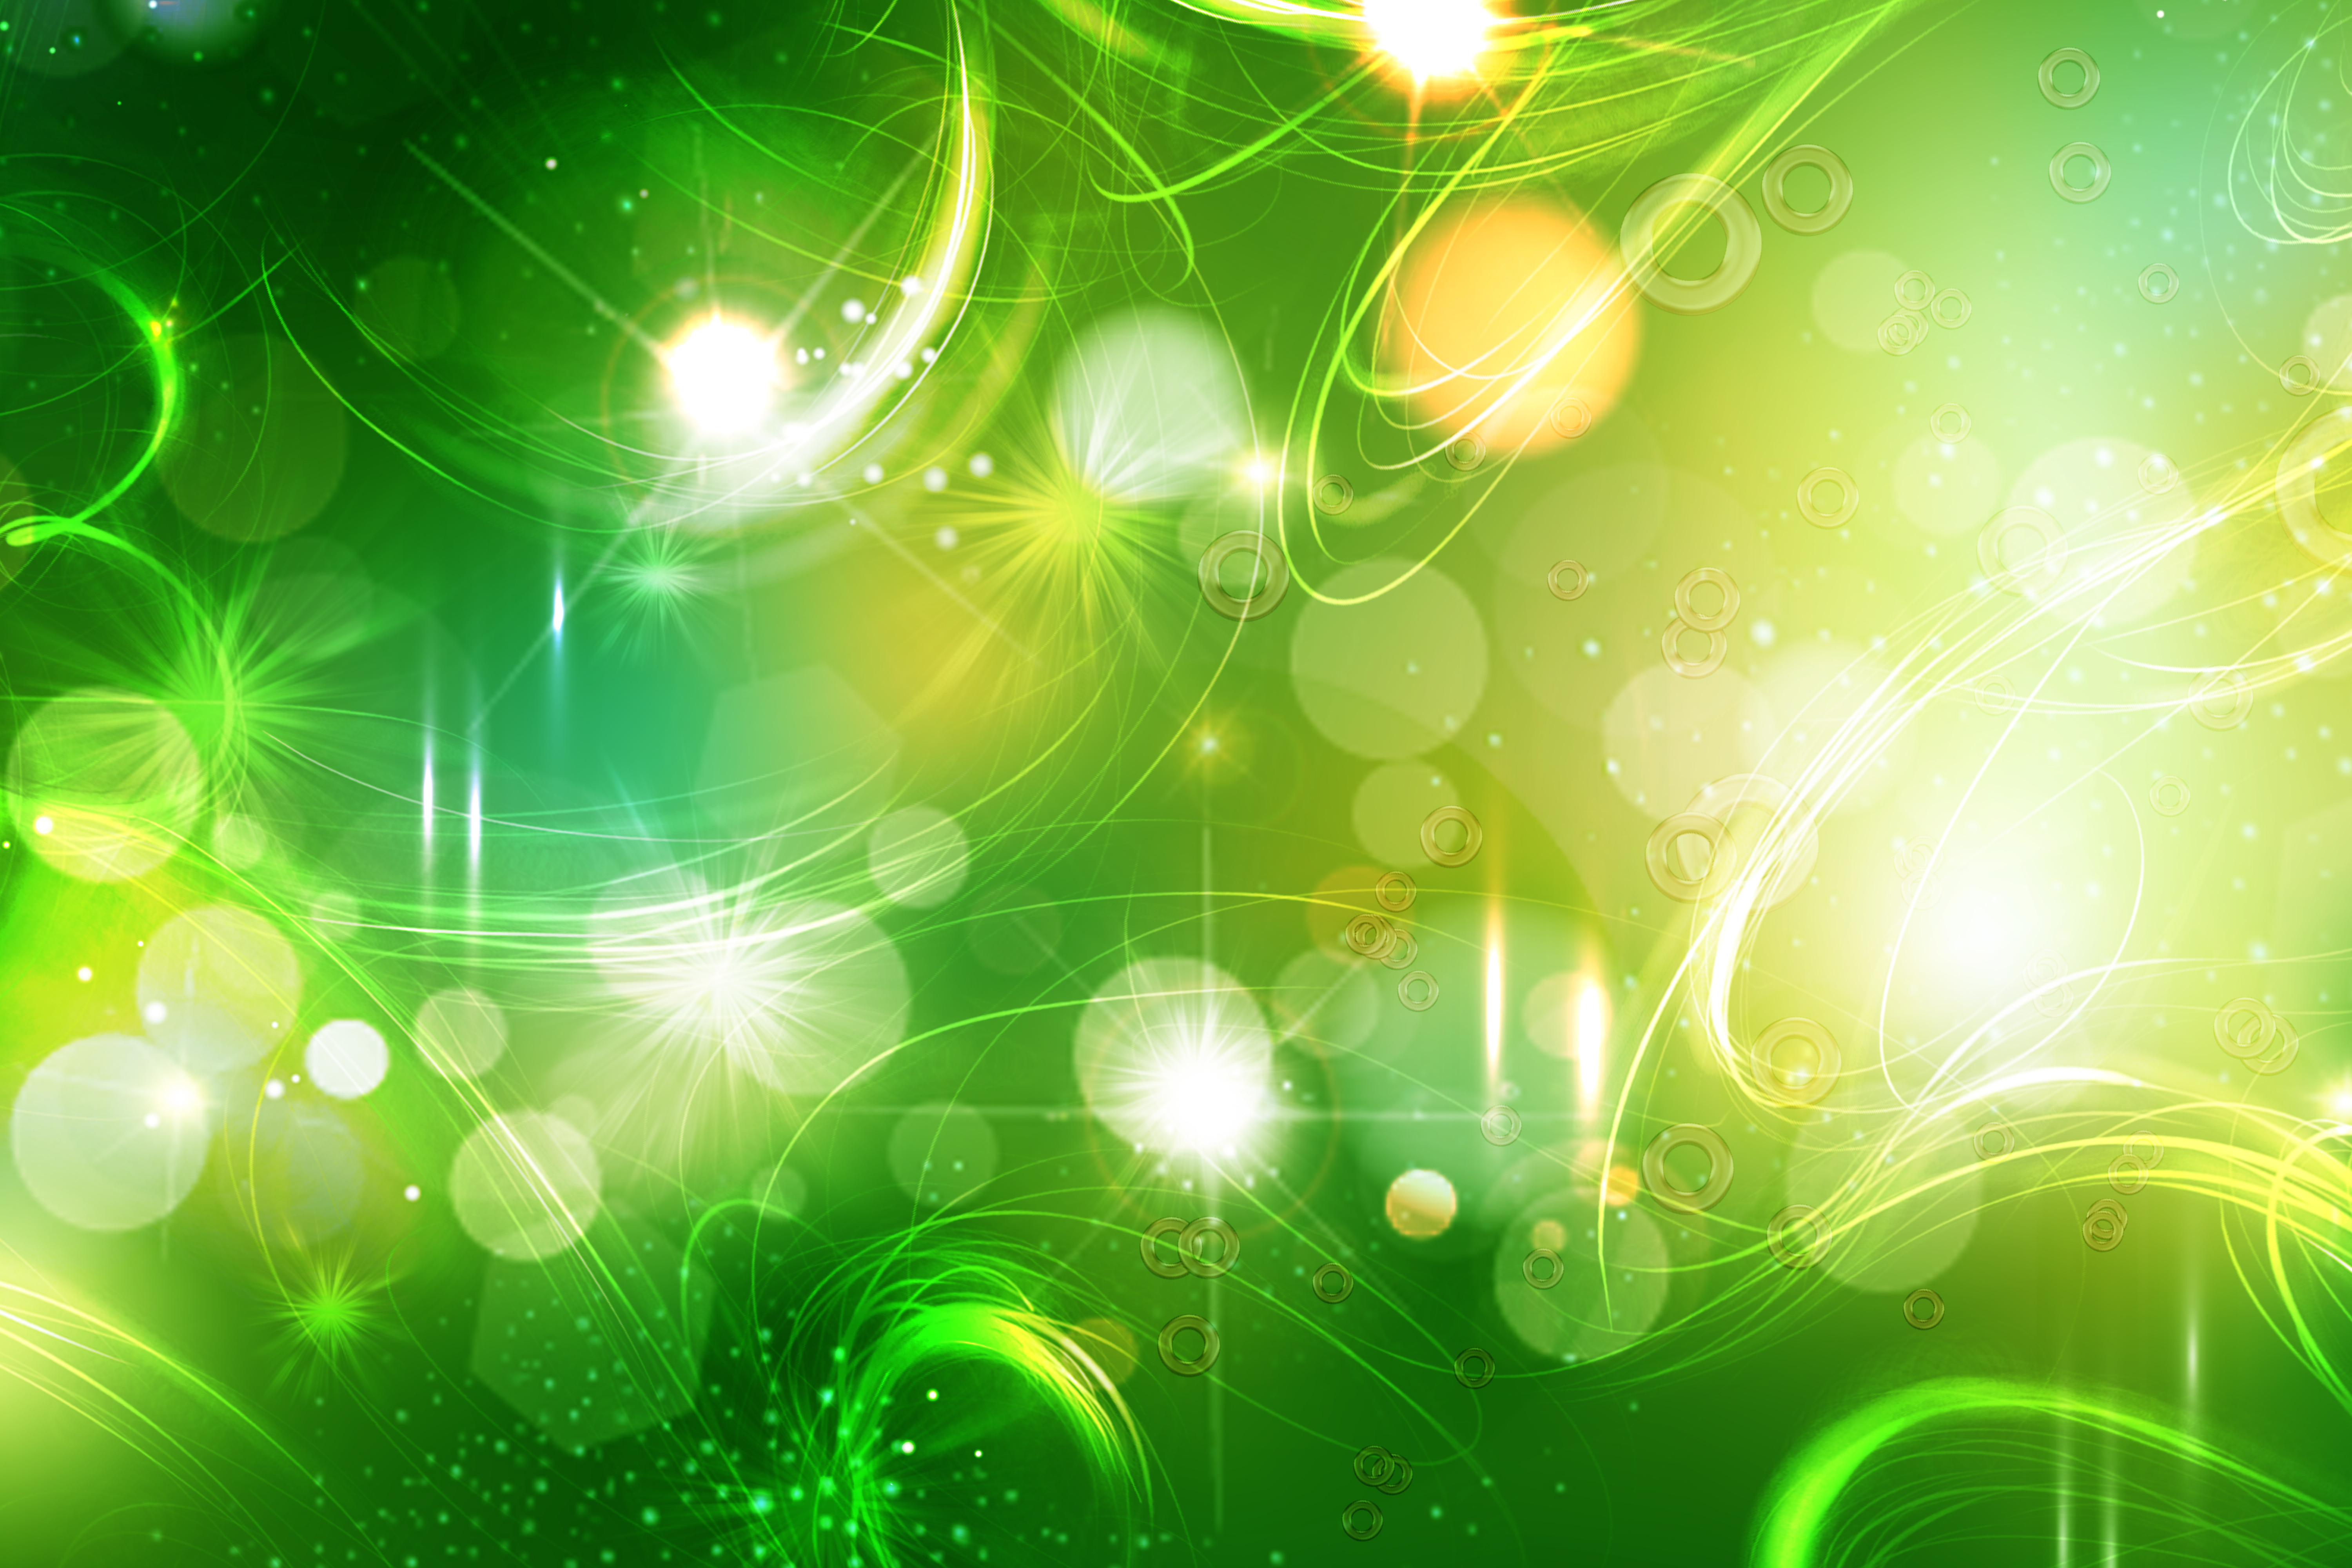 green-shining-picture-desktop-background-abstract-photo ...